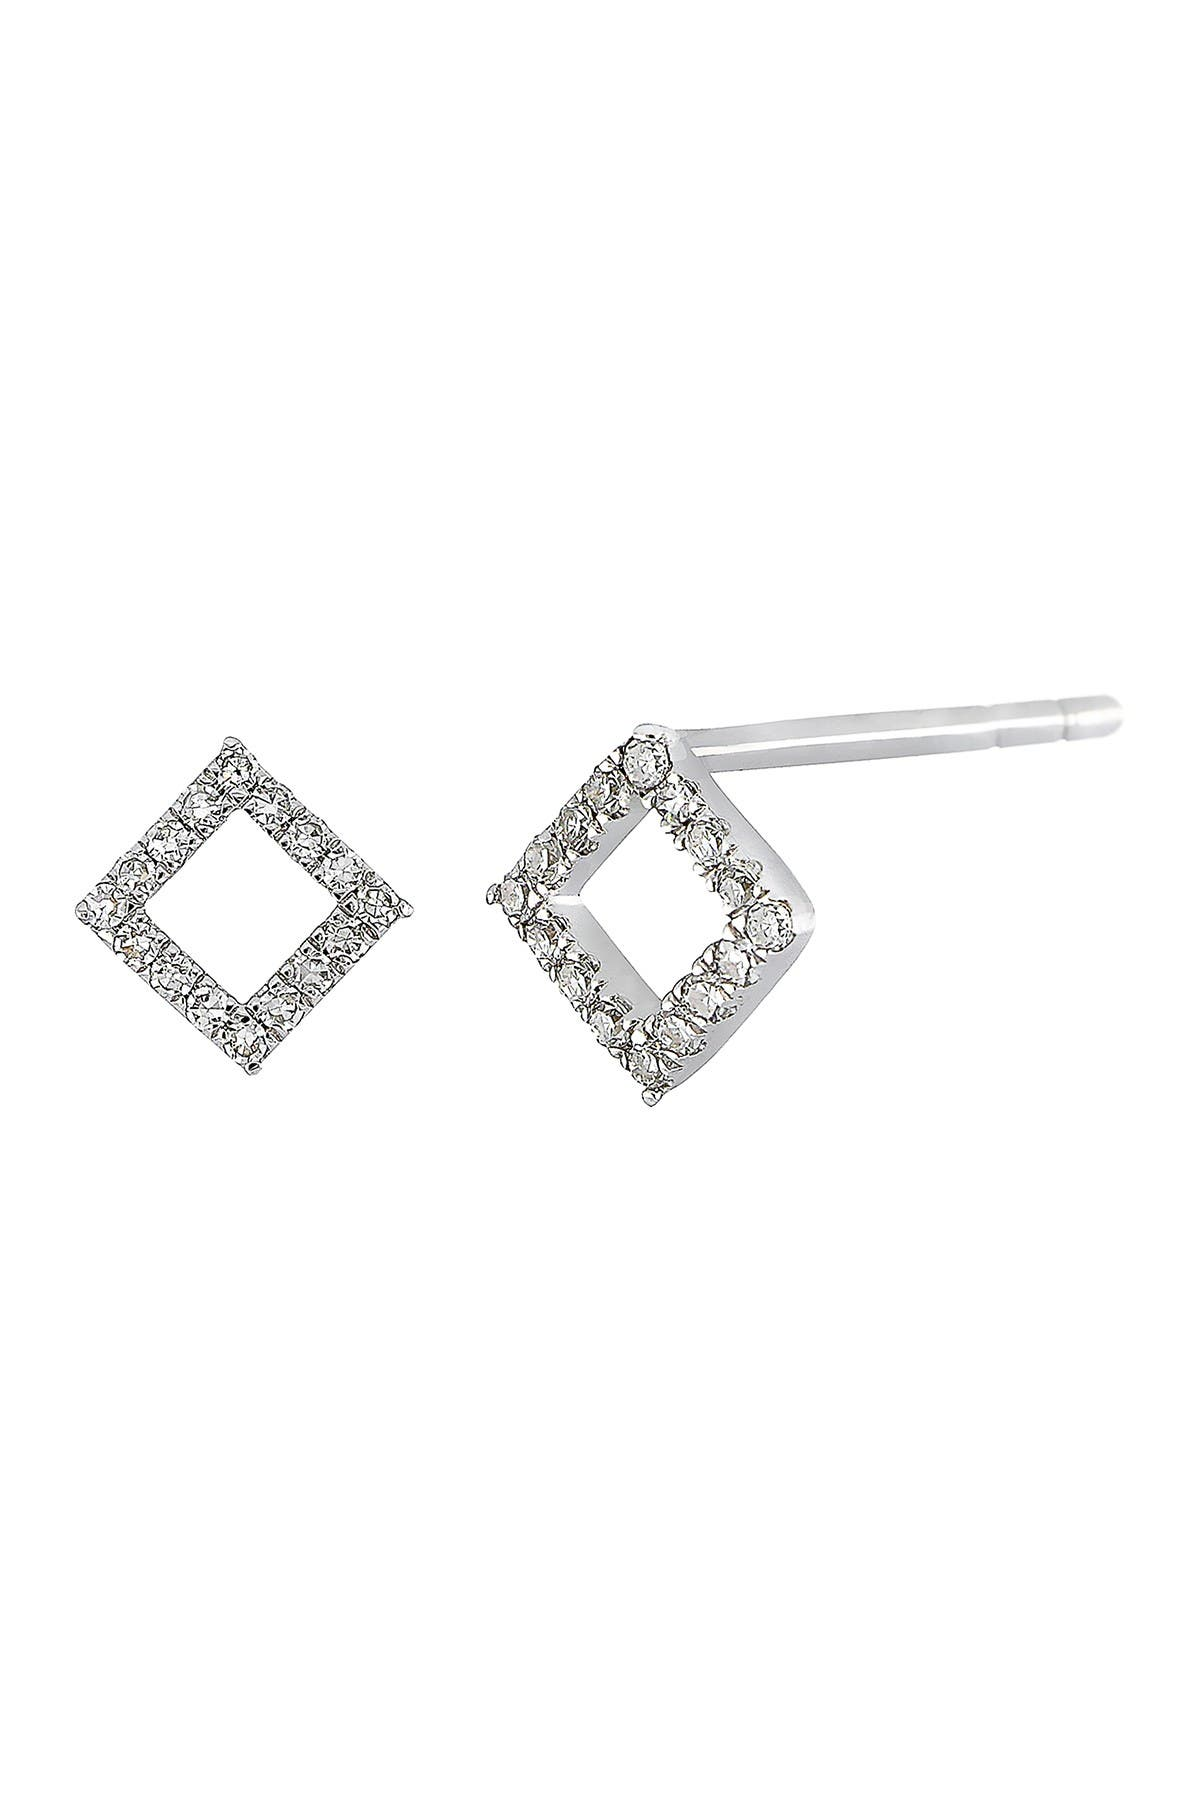 Image of Carriere Sterling Silver Pave Diamond Open Shape Stud Earrings - 0.16 ctw